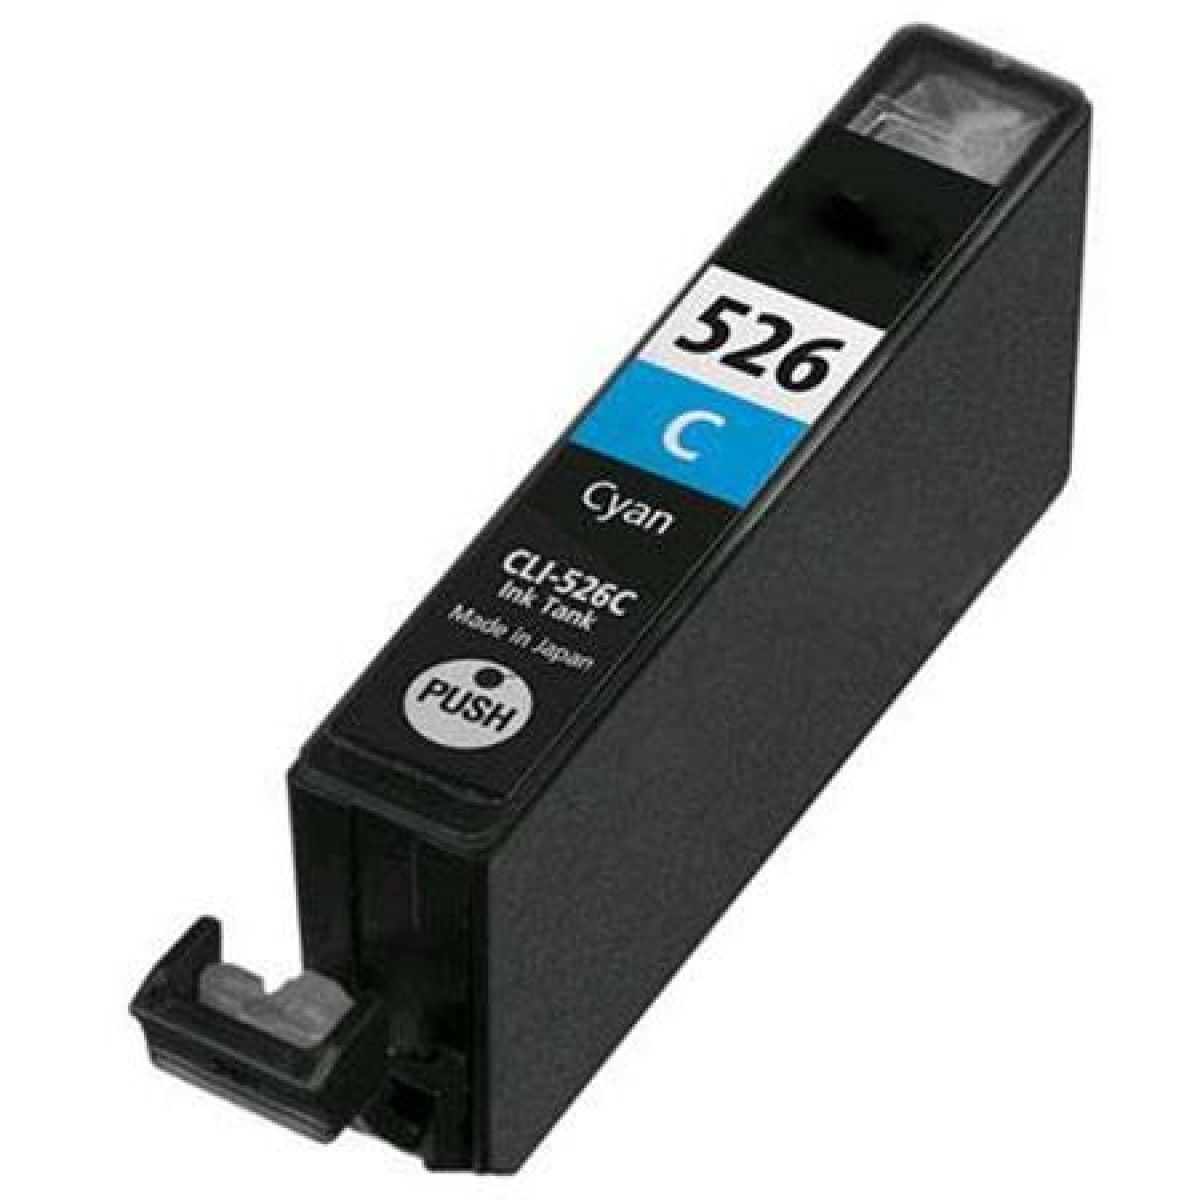 Compatible Cyan Canon CLI-526C Ink Cartridge: €4.31